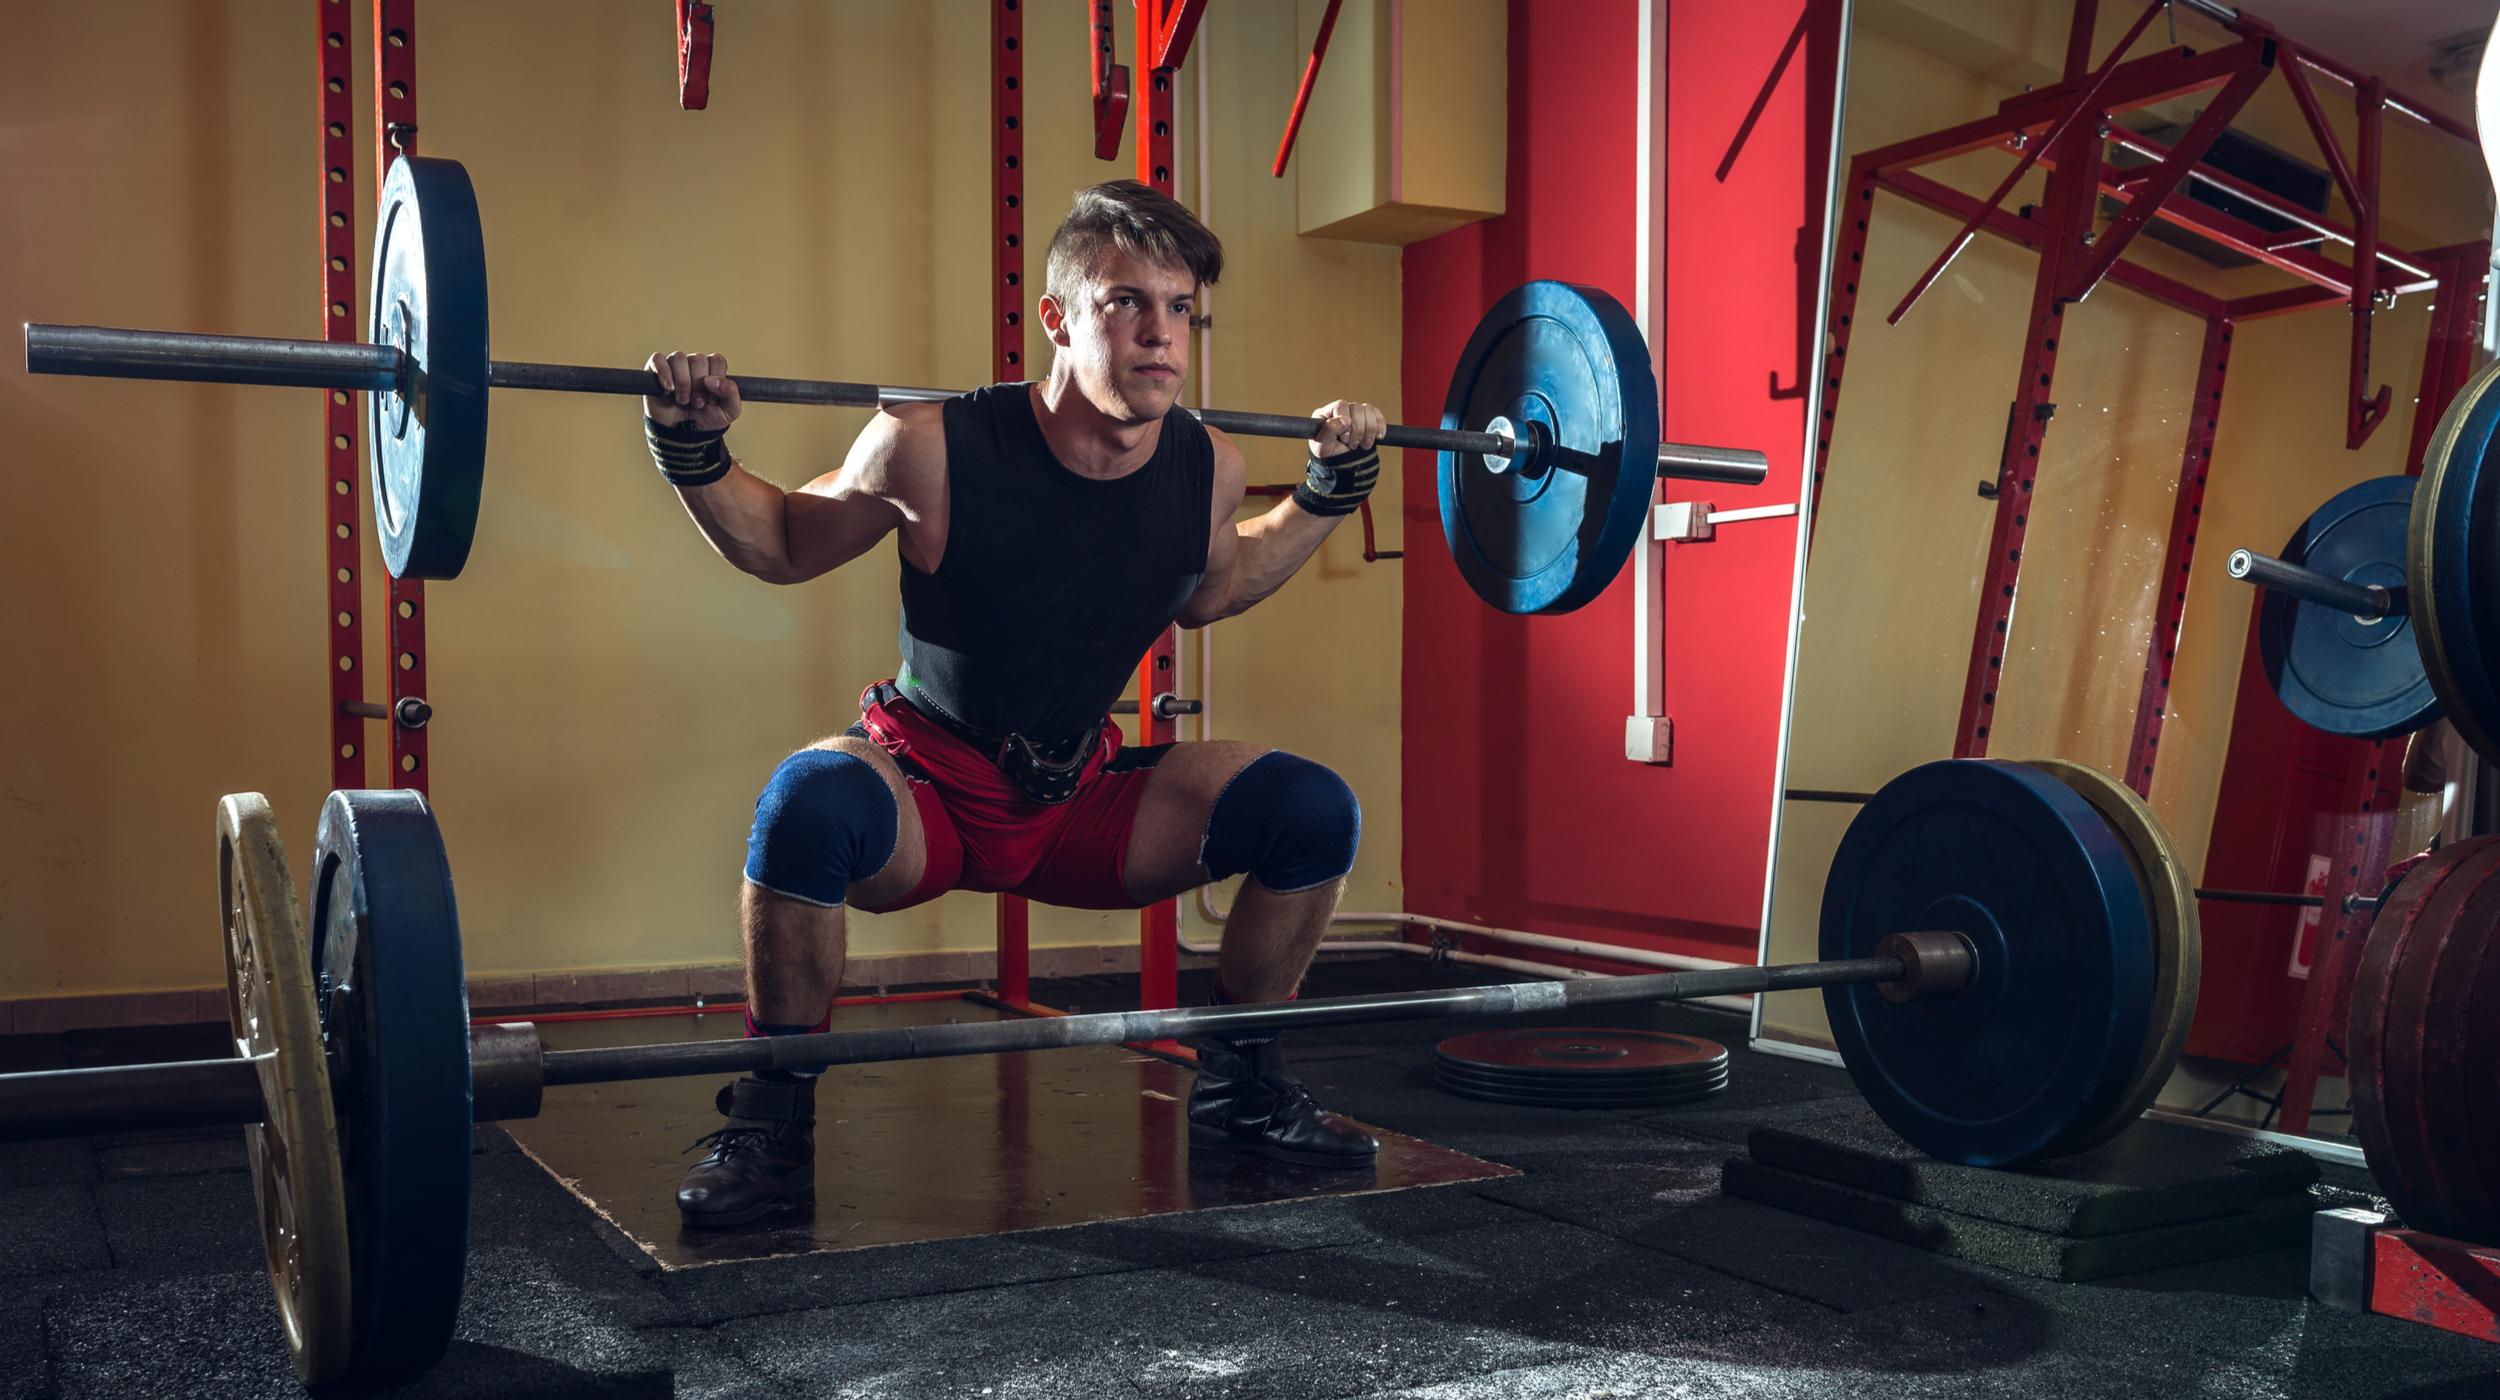 At What Age is it Safe to Start Squatting and Deadlifting?